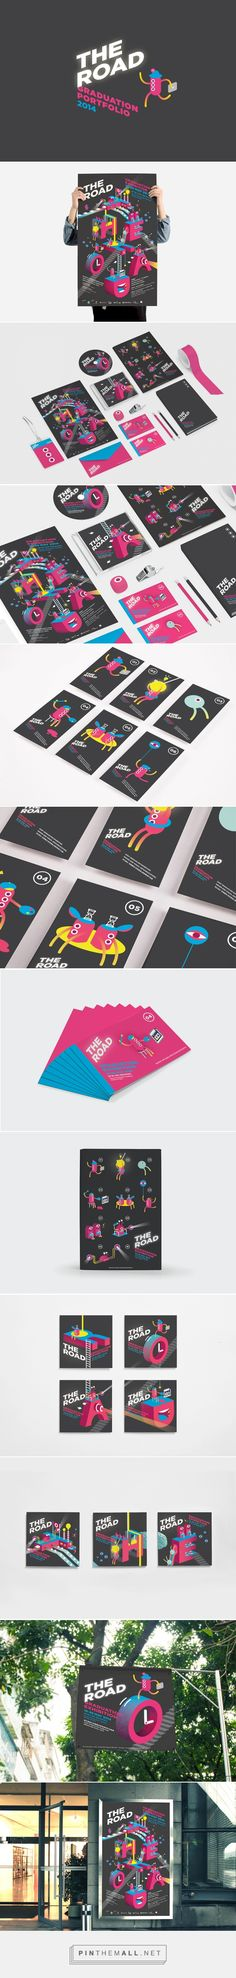 THE ROAD GRADUATION PORTFOLIO 2014 on Behance | Fivestar Branding – Design and Branding Agency & Inspiration Gallery